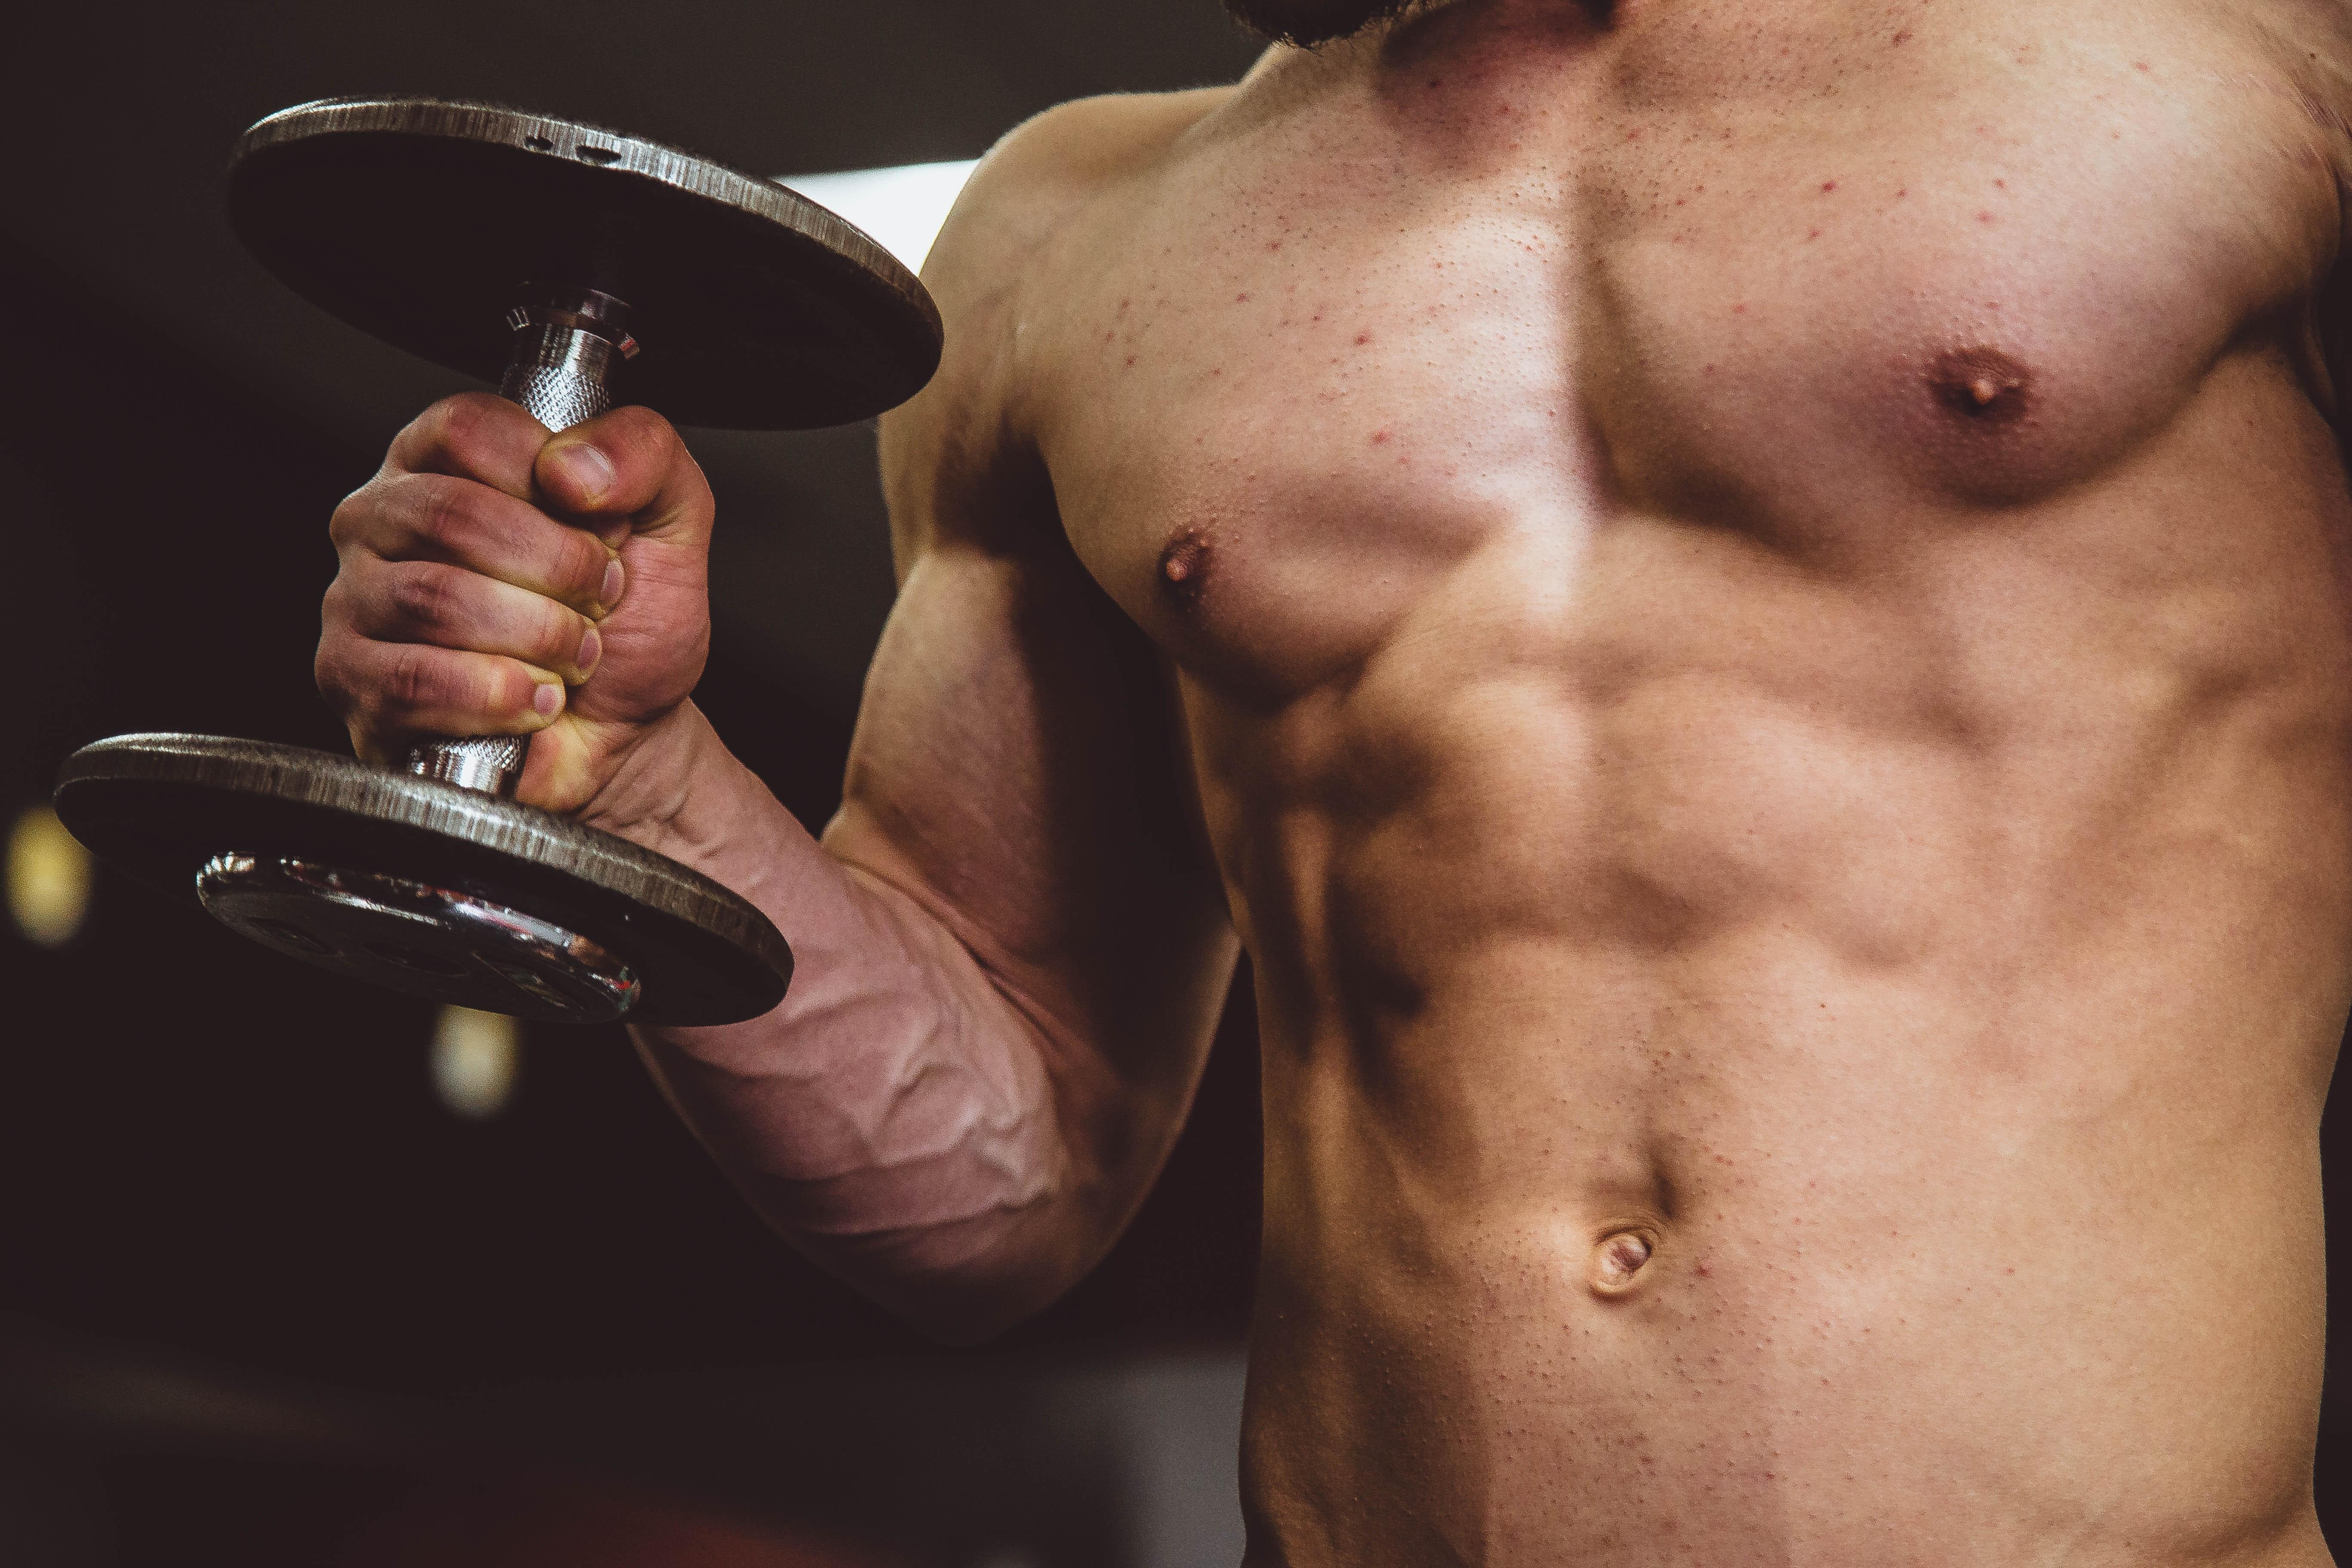 Picture with tags: Motivation, Training, Interesting, Sport, Fitness, Recommendations, Health